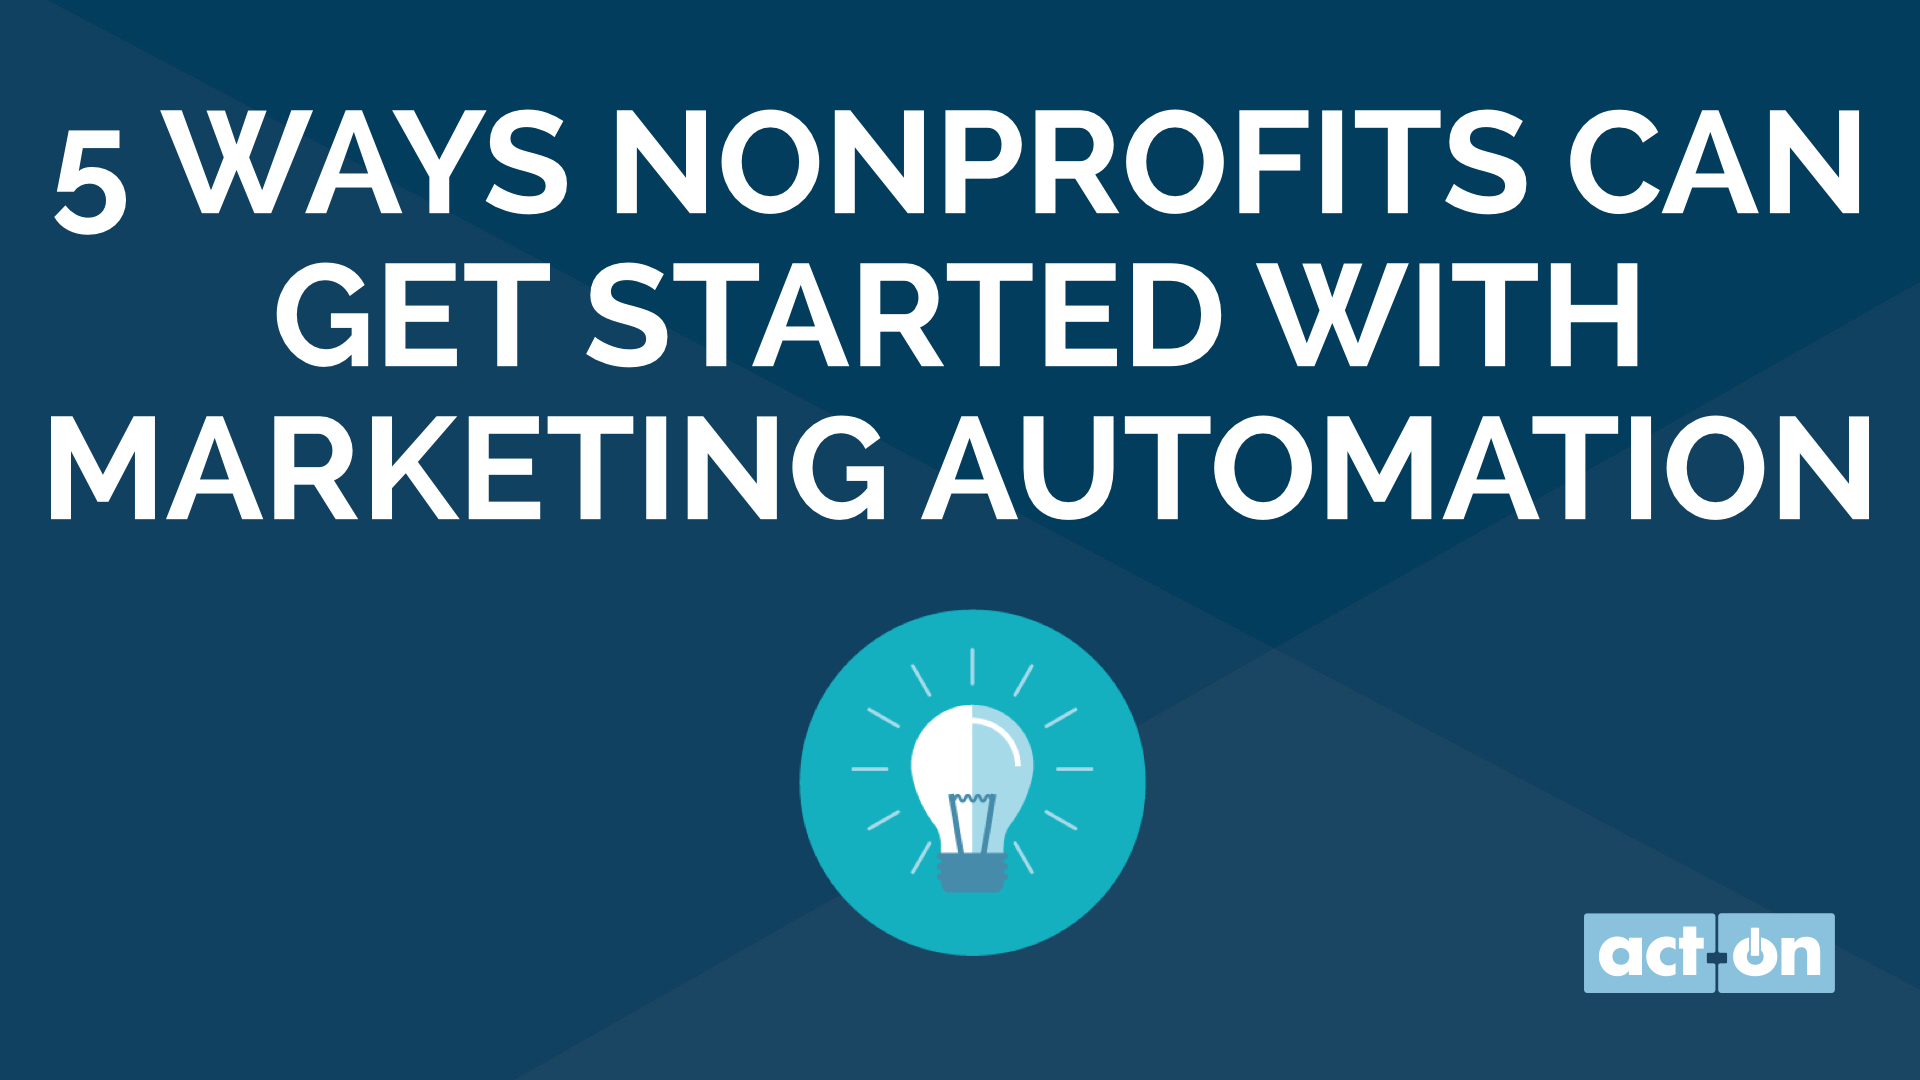 5 Ways Nonprofits Can Get Started With Marketing Automation